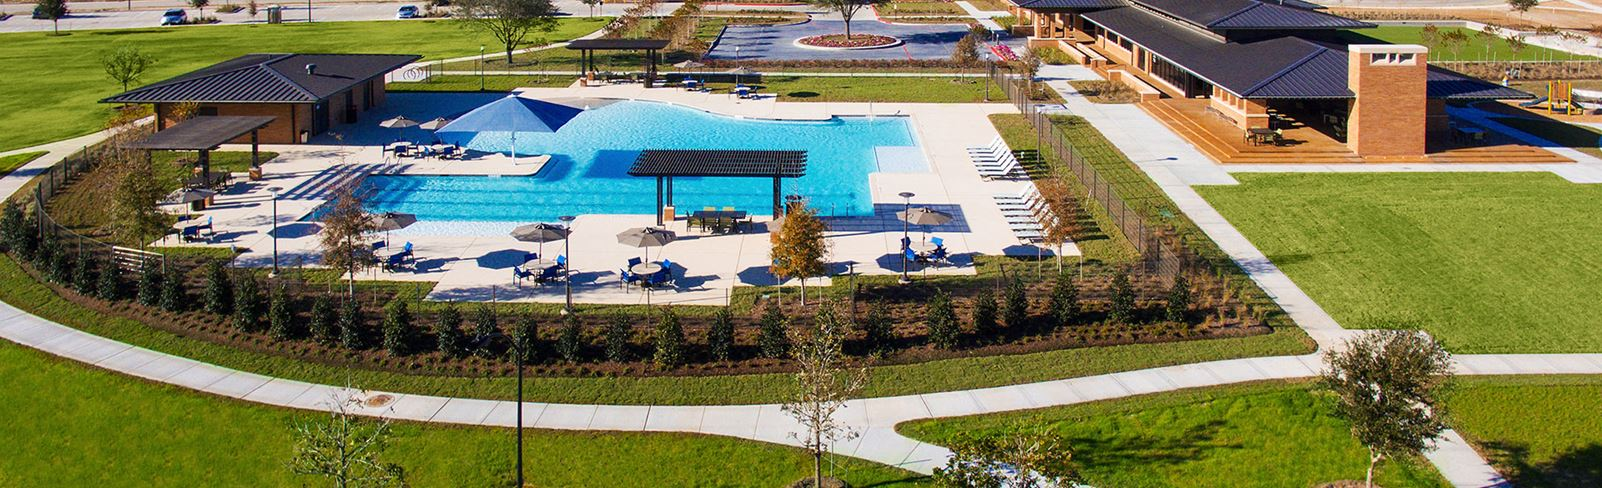 Birdseye view of Elyson pool in Elyson Katy, TX